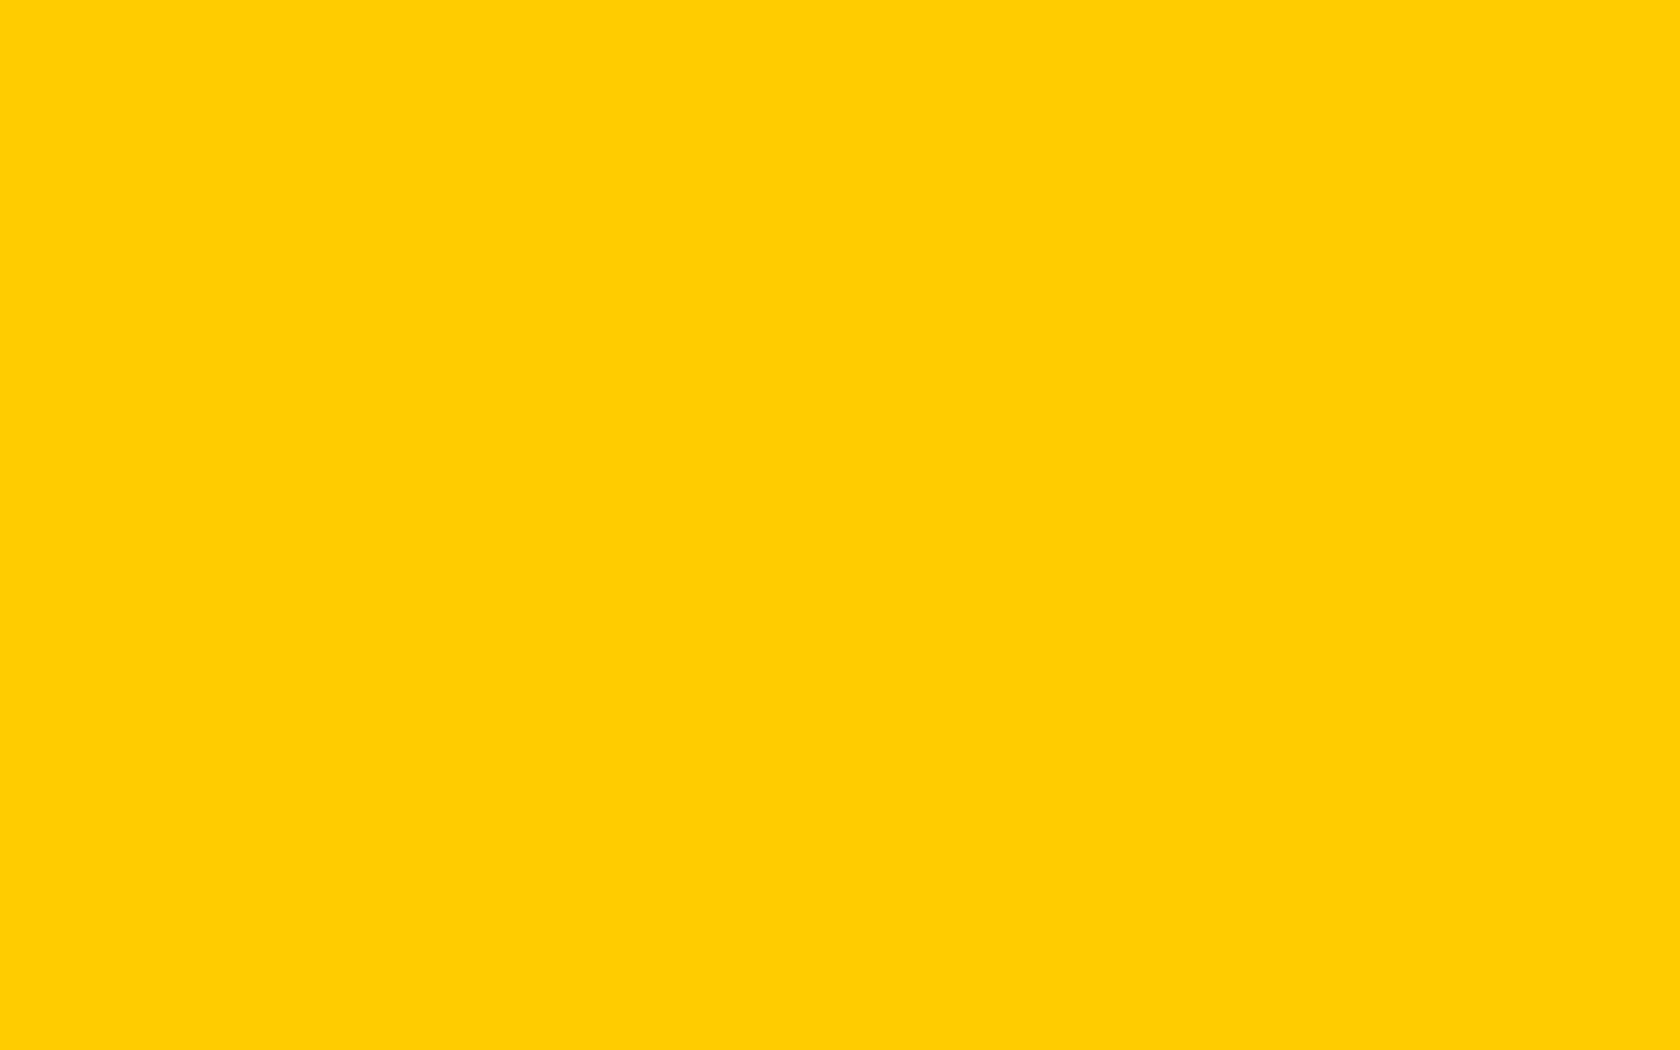 1680x1050 Tangerine Yellow Solid Color Background